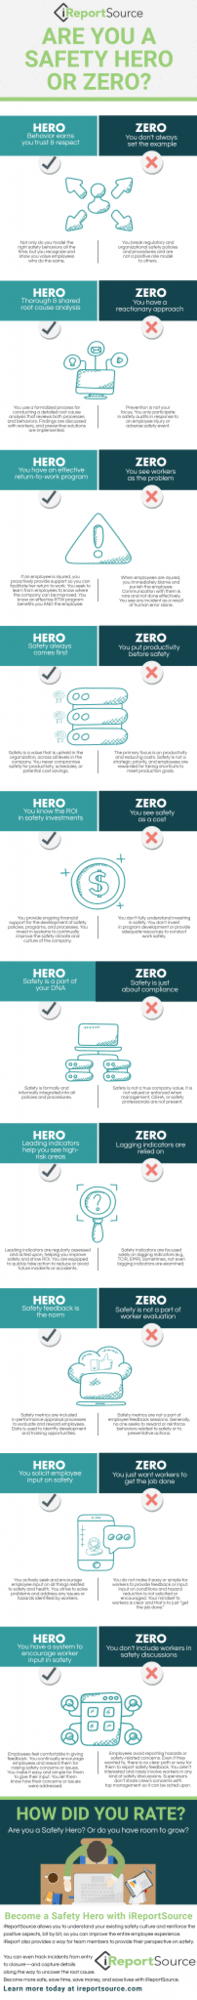 ireportsource infographic are you a safety hero or safety zero